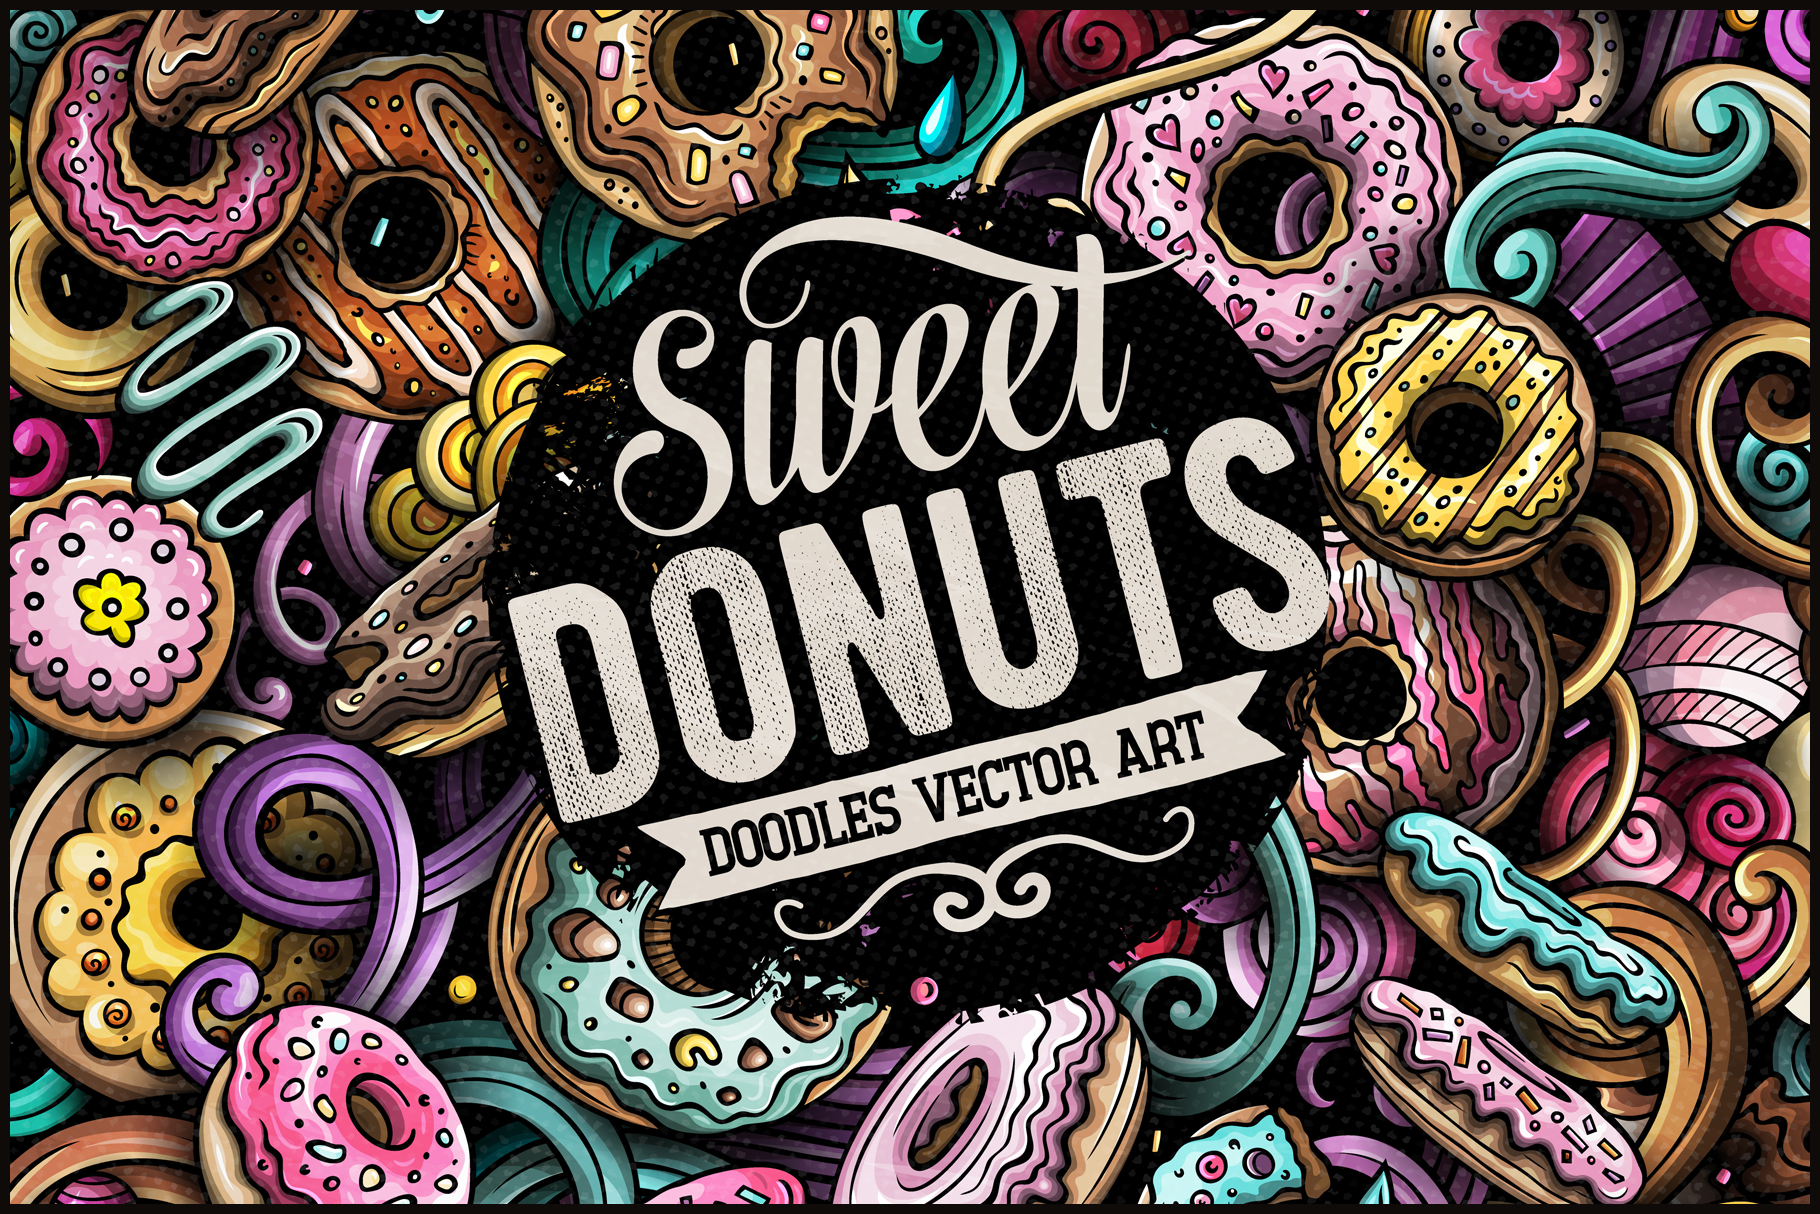 Donuts Vector Doodle Illustration example image 1